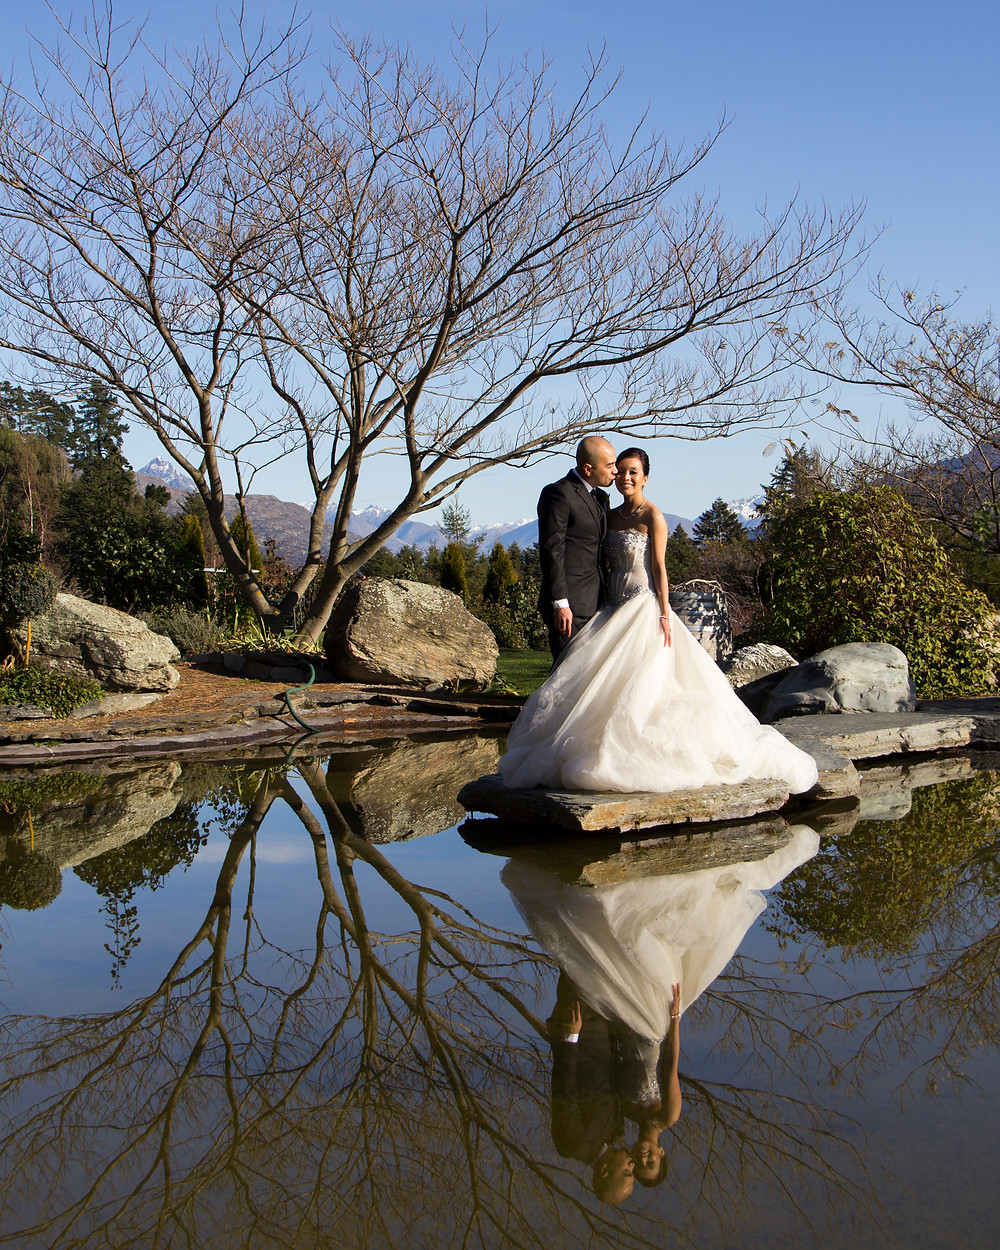 A Bride and Groom kissing with water reflection